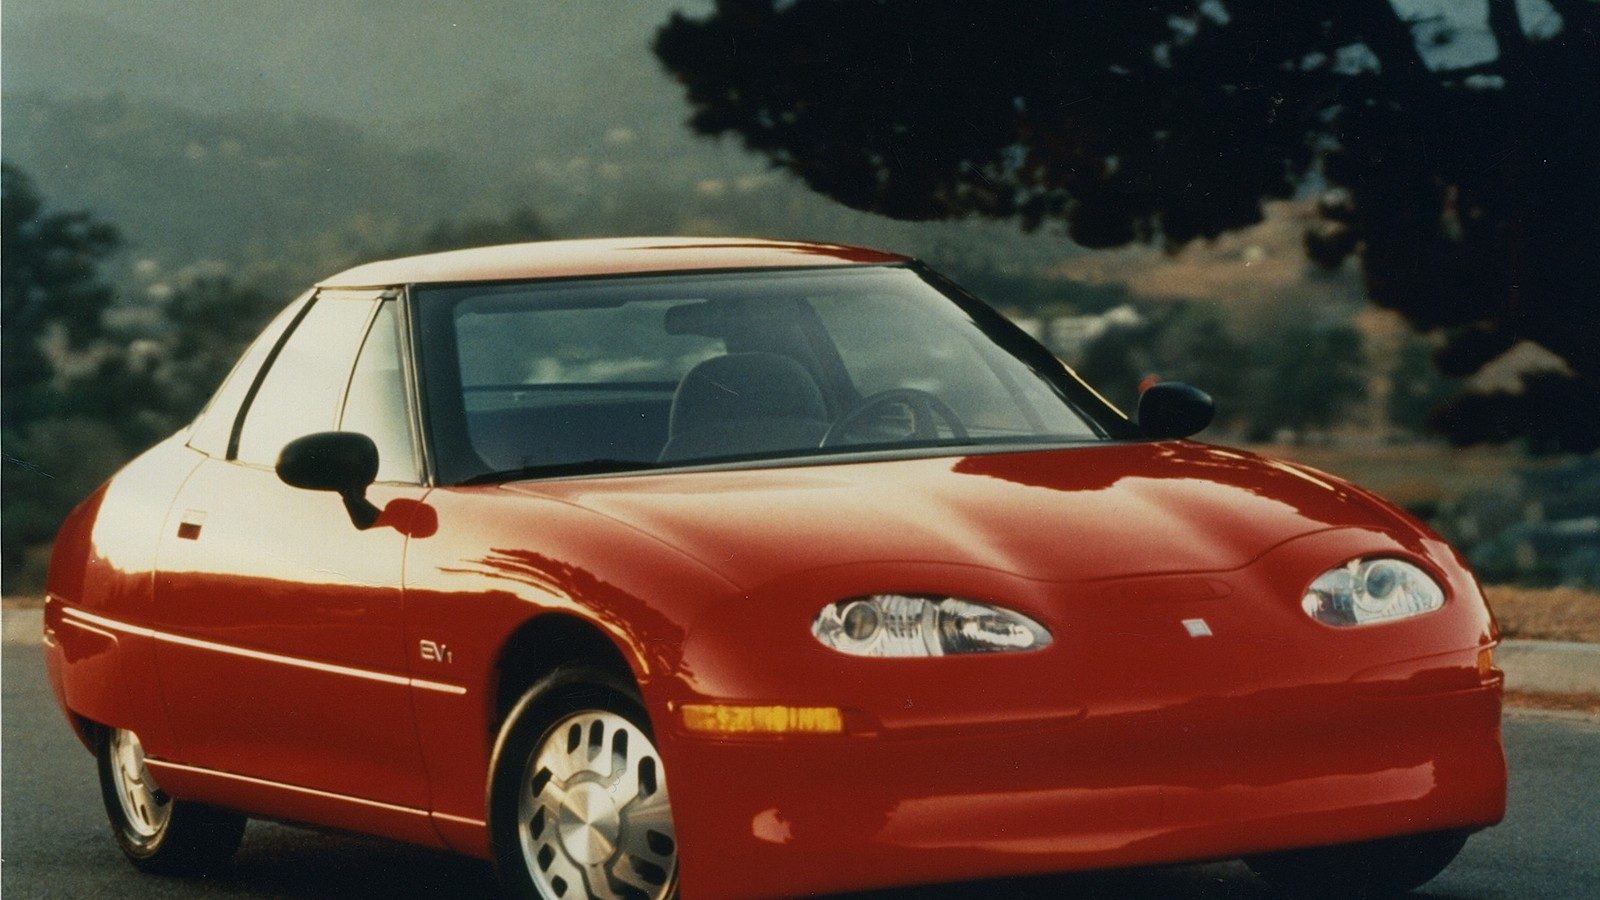 10 classic electric cars you never knew existed - General Motors EV1